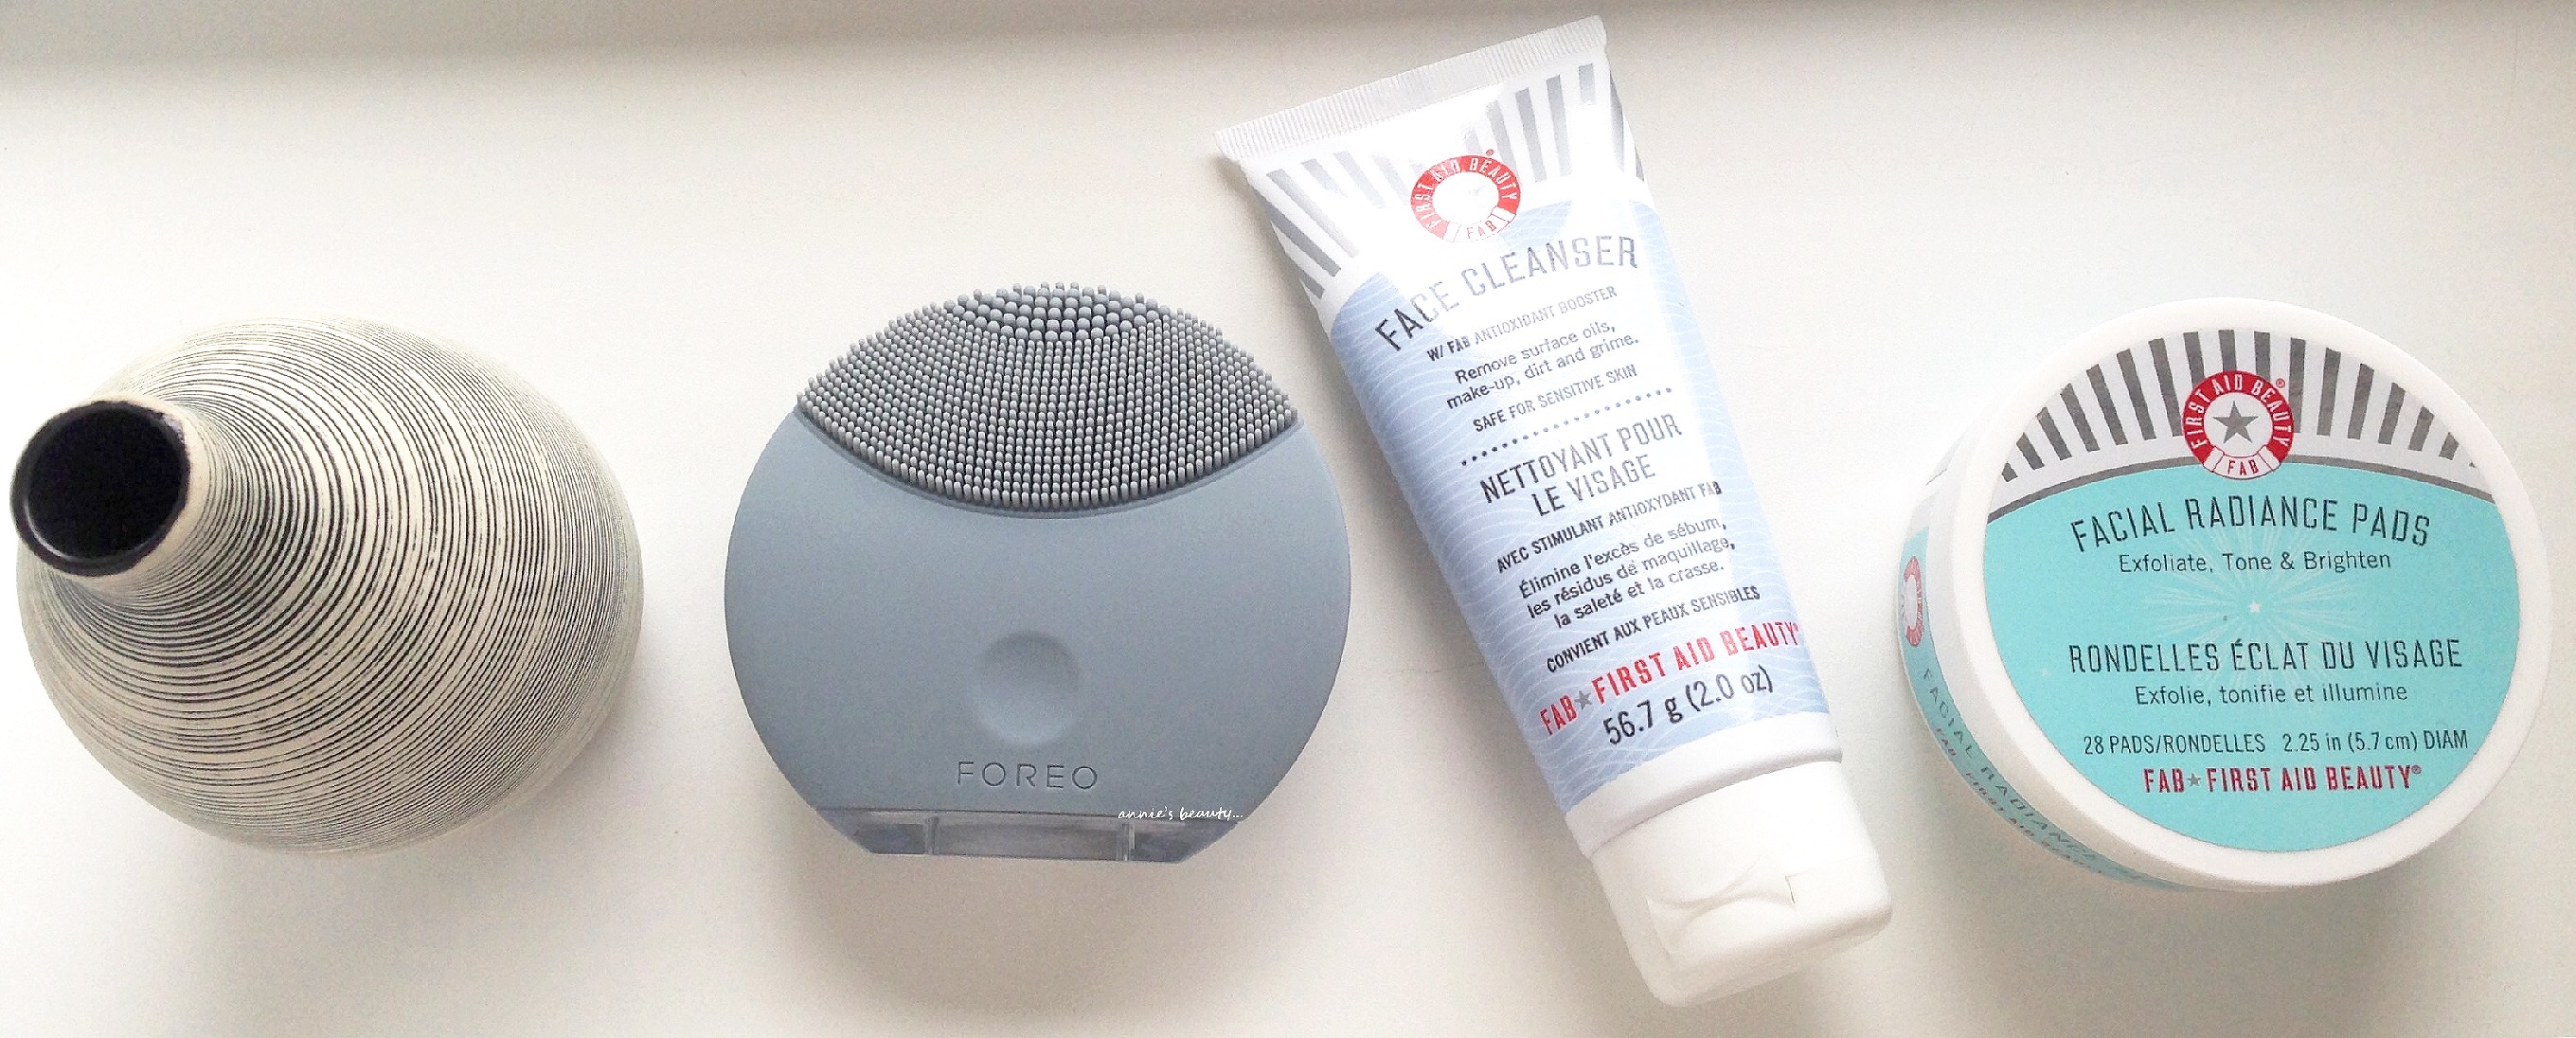 Facial Radiance Pads by First Aid Beauty #10